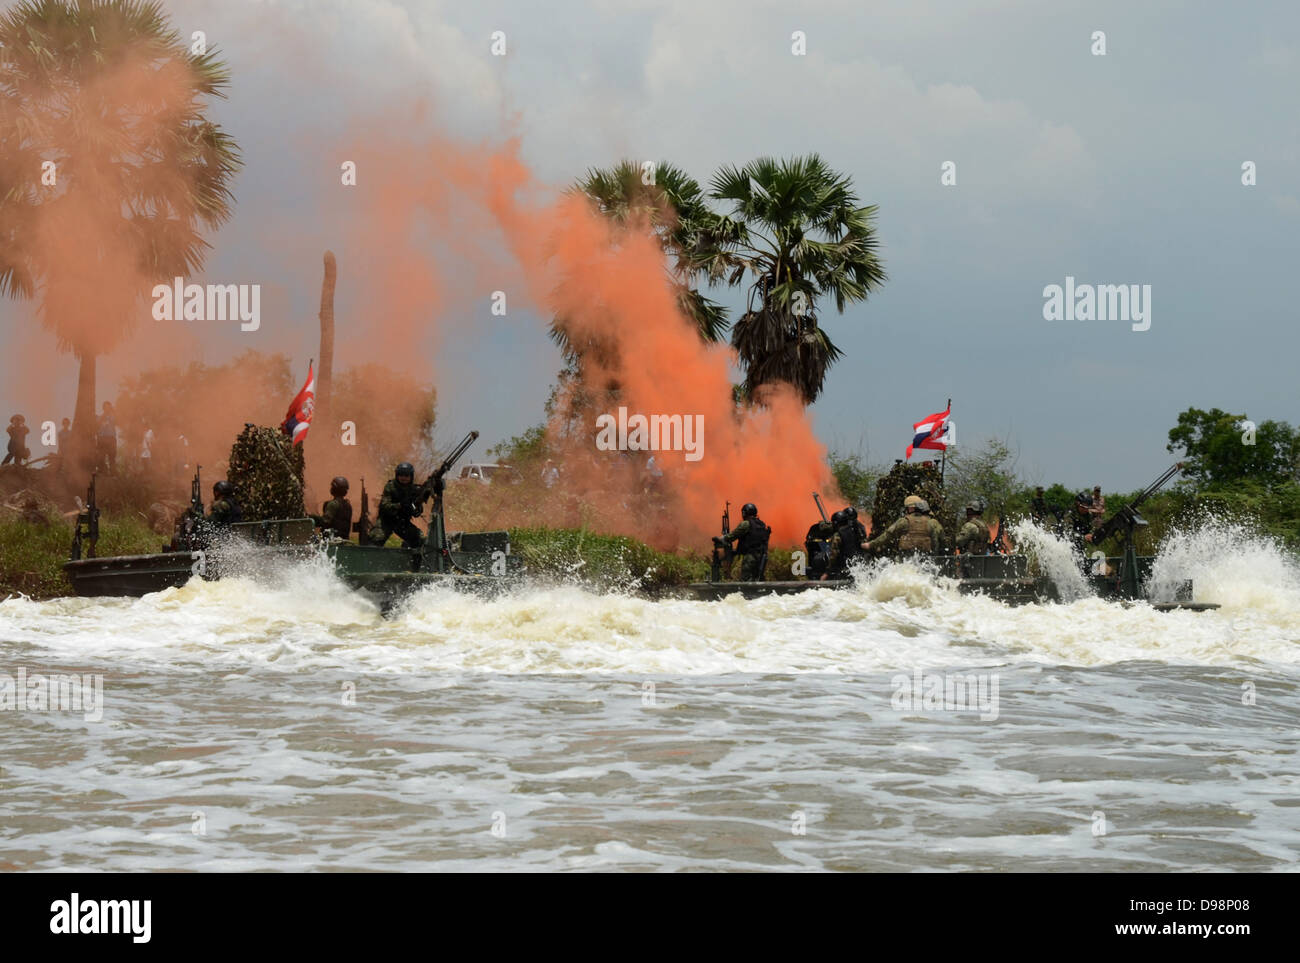 NAKHORNNAYOK RIVER, Thailand (June 8, 2013) Sailors assigned to Maritime Civil Affairs and Security Training, Security Stock Photo